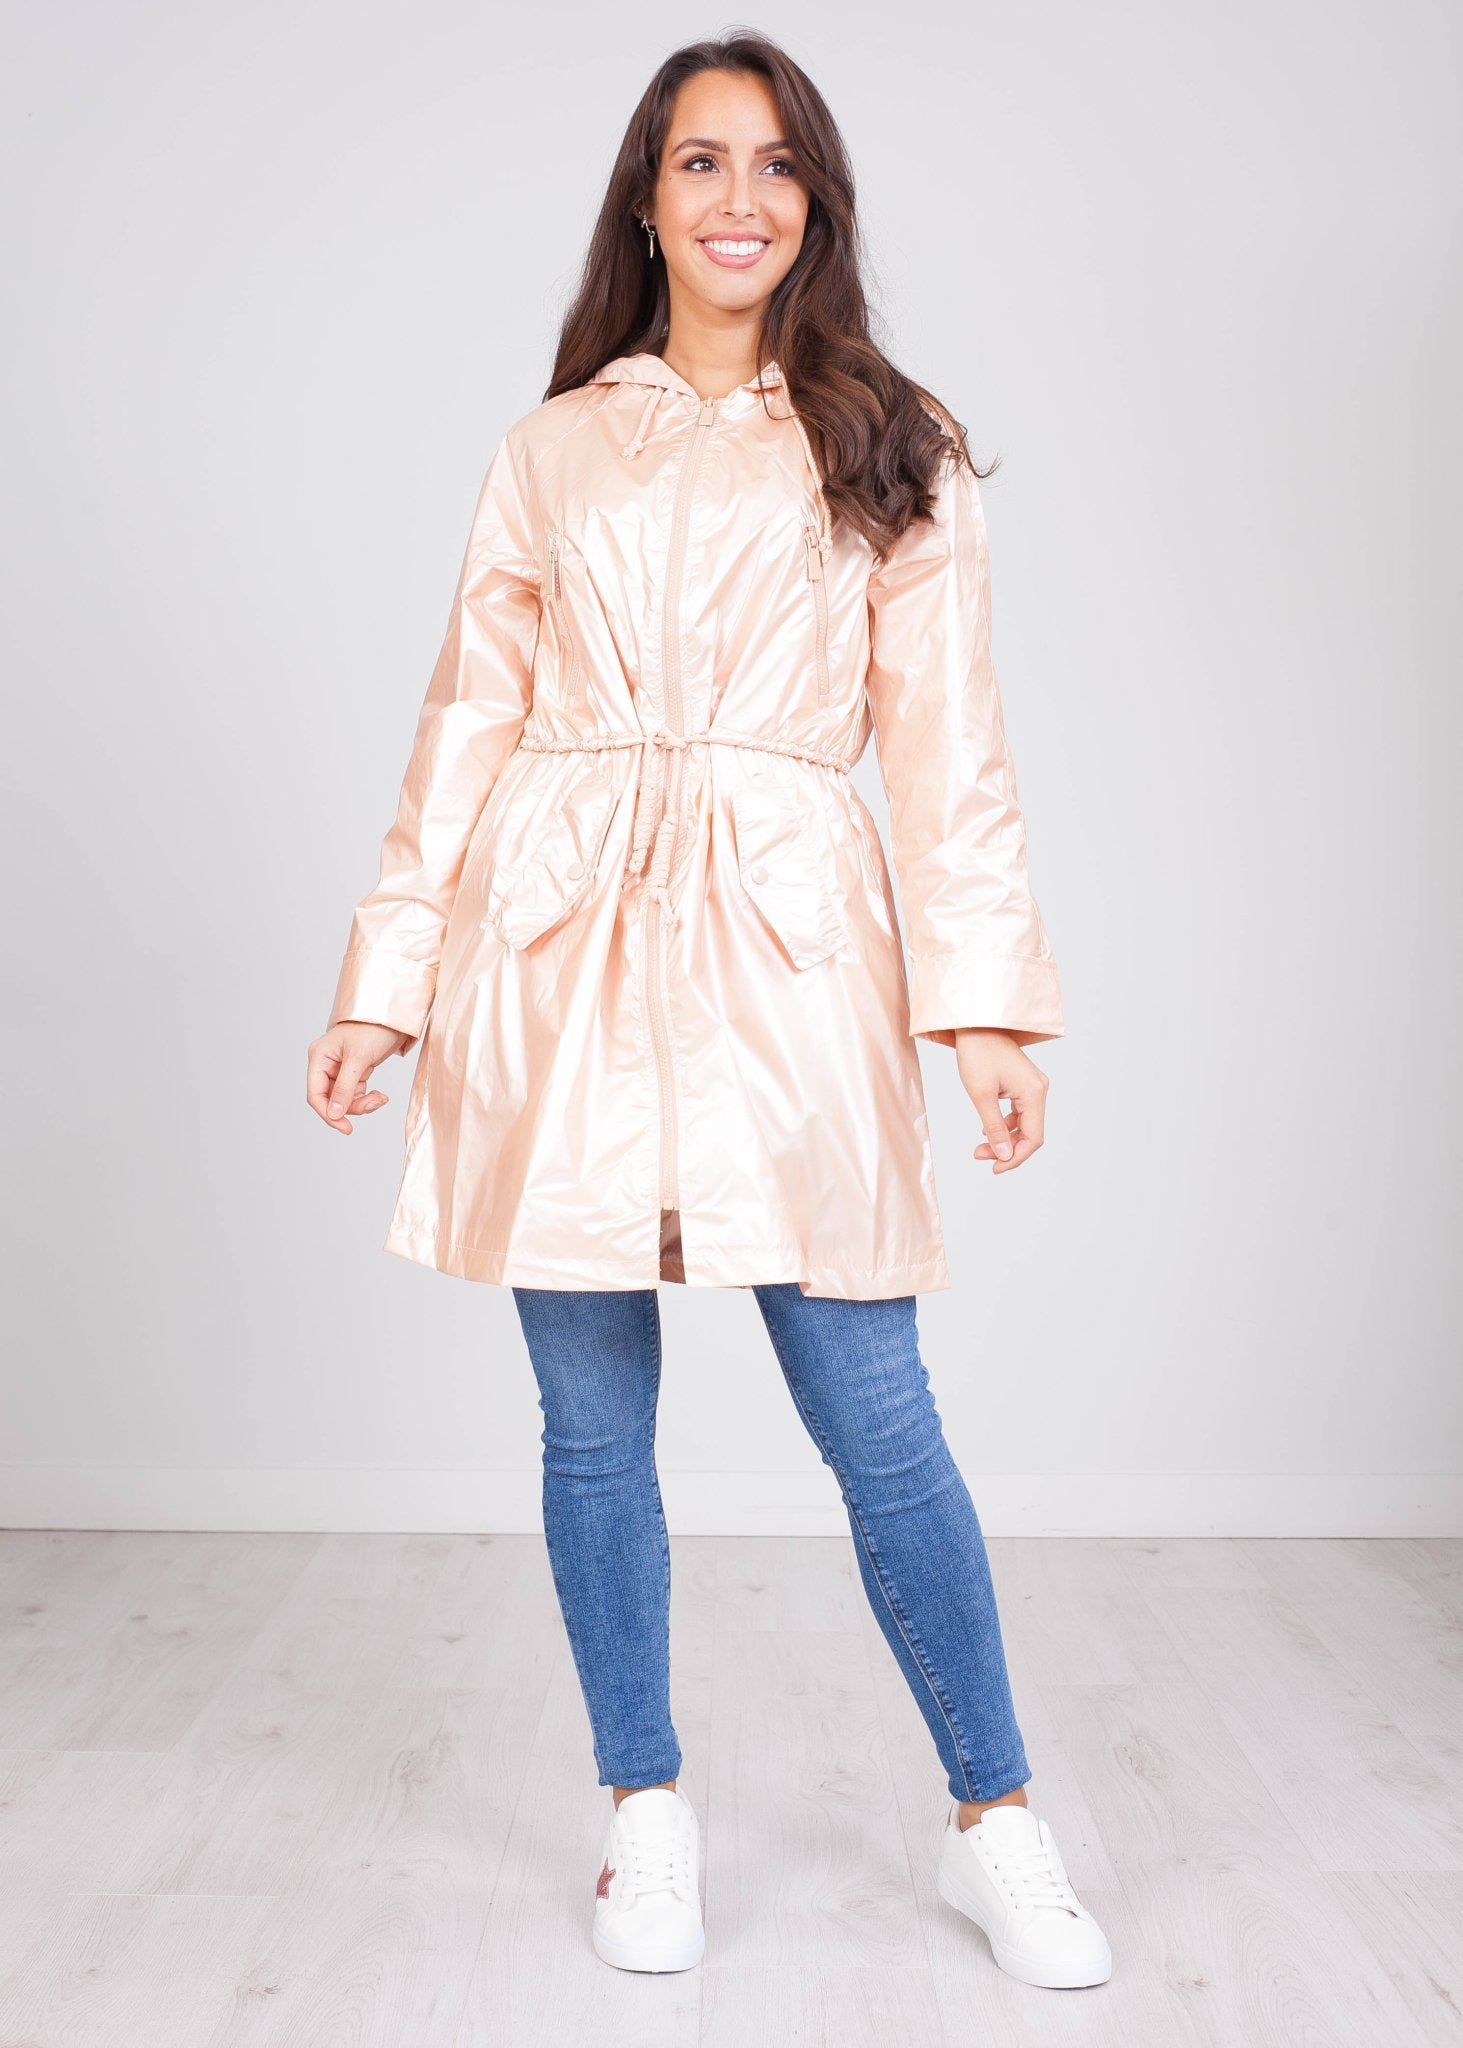 Priya Pearl Rain Coat - The Walk in Wardrobe